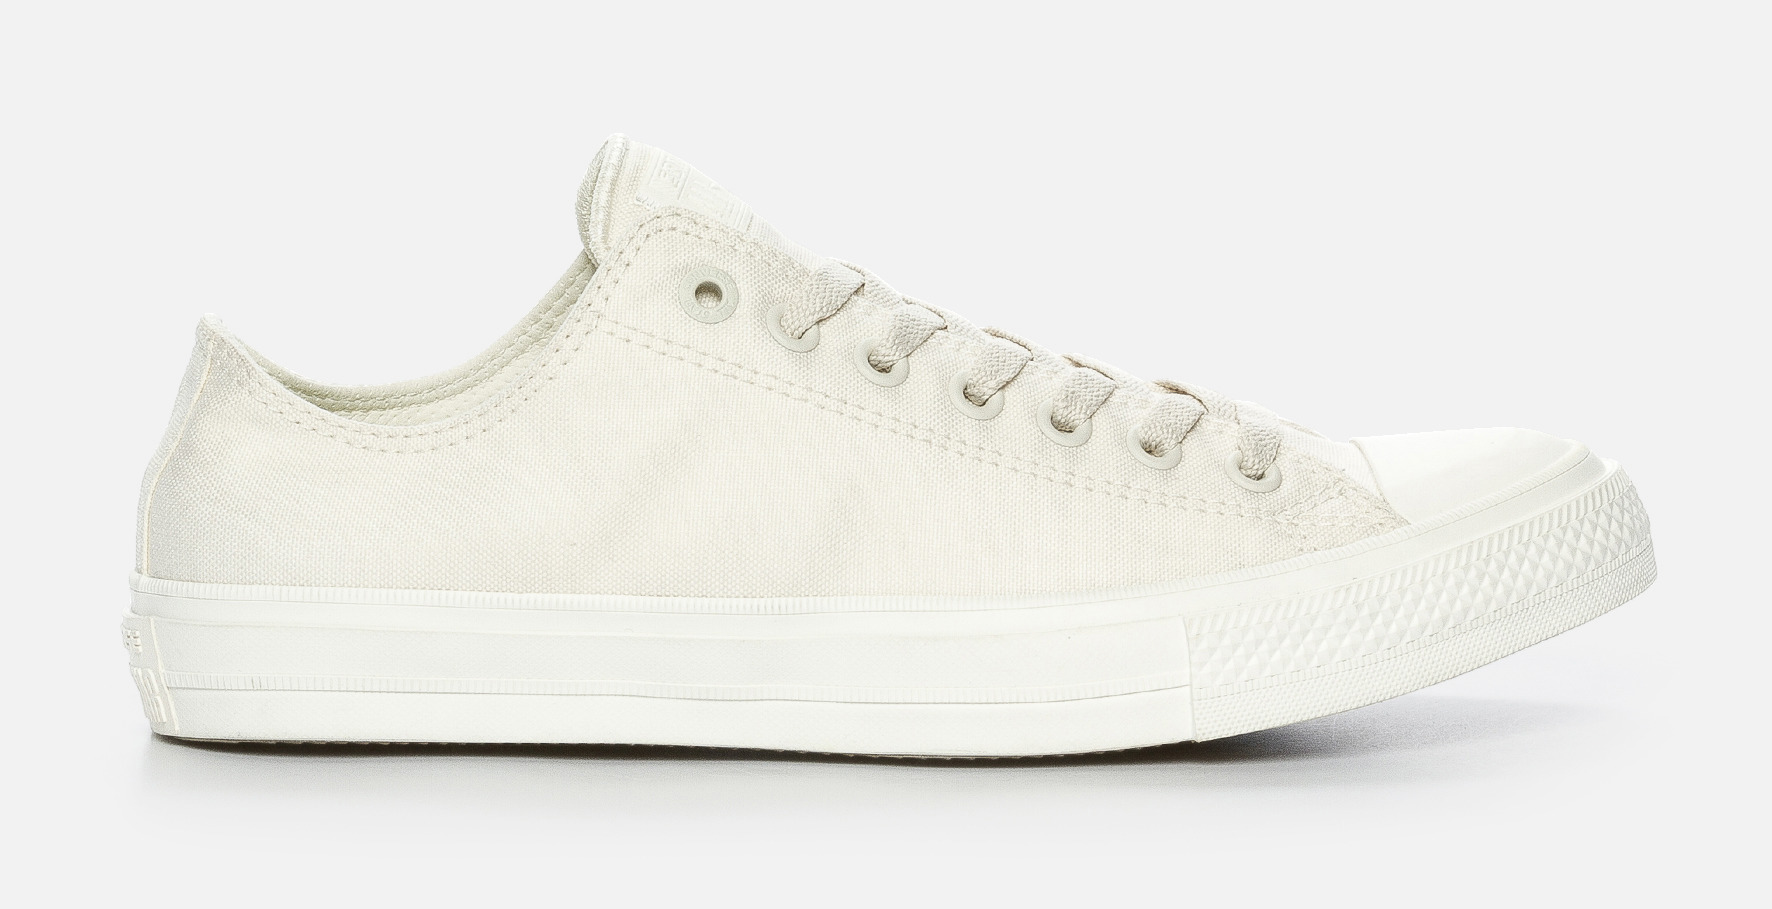 Converse ChuckTaylor All Star kungsgatan